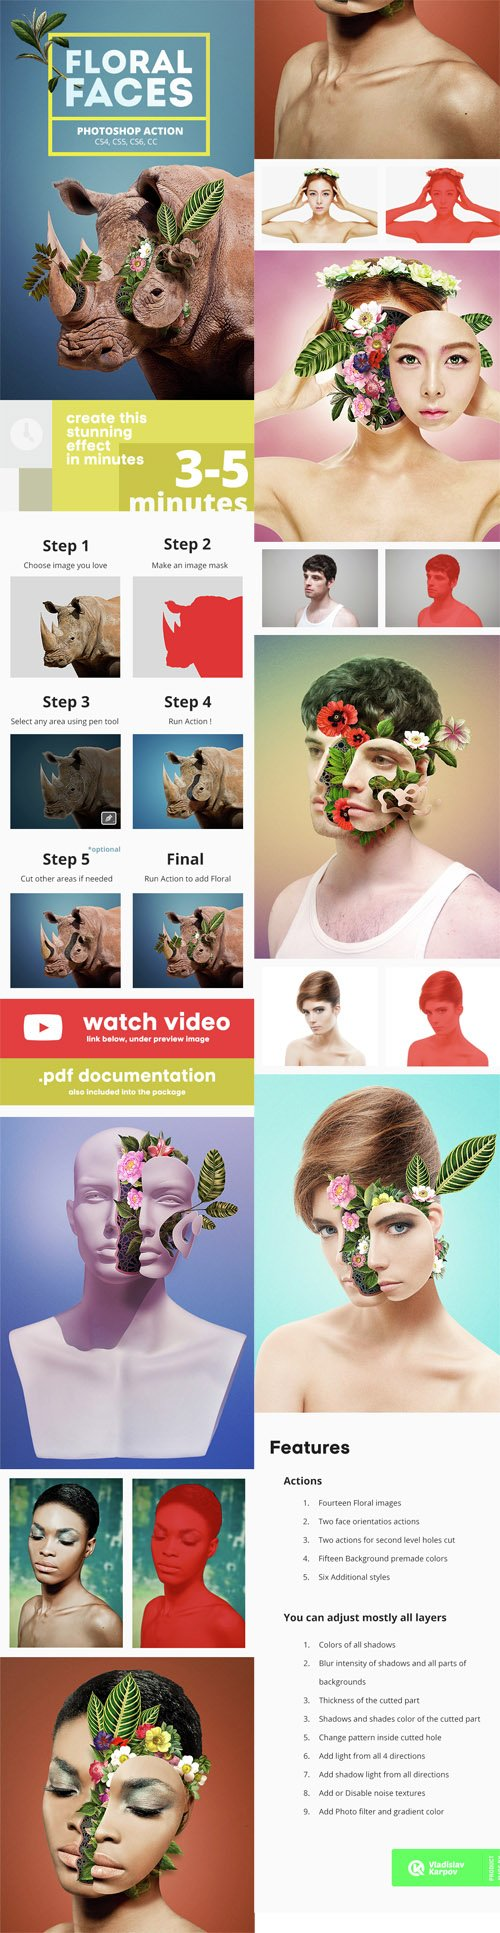 GraphicRiver - Floral Faces - Photoshop Action 14523331